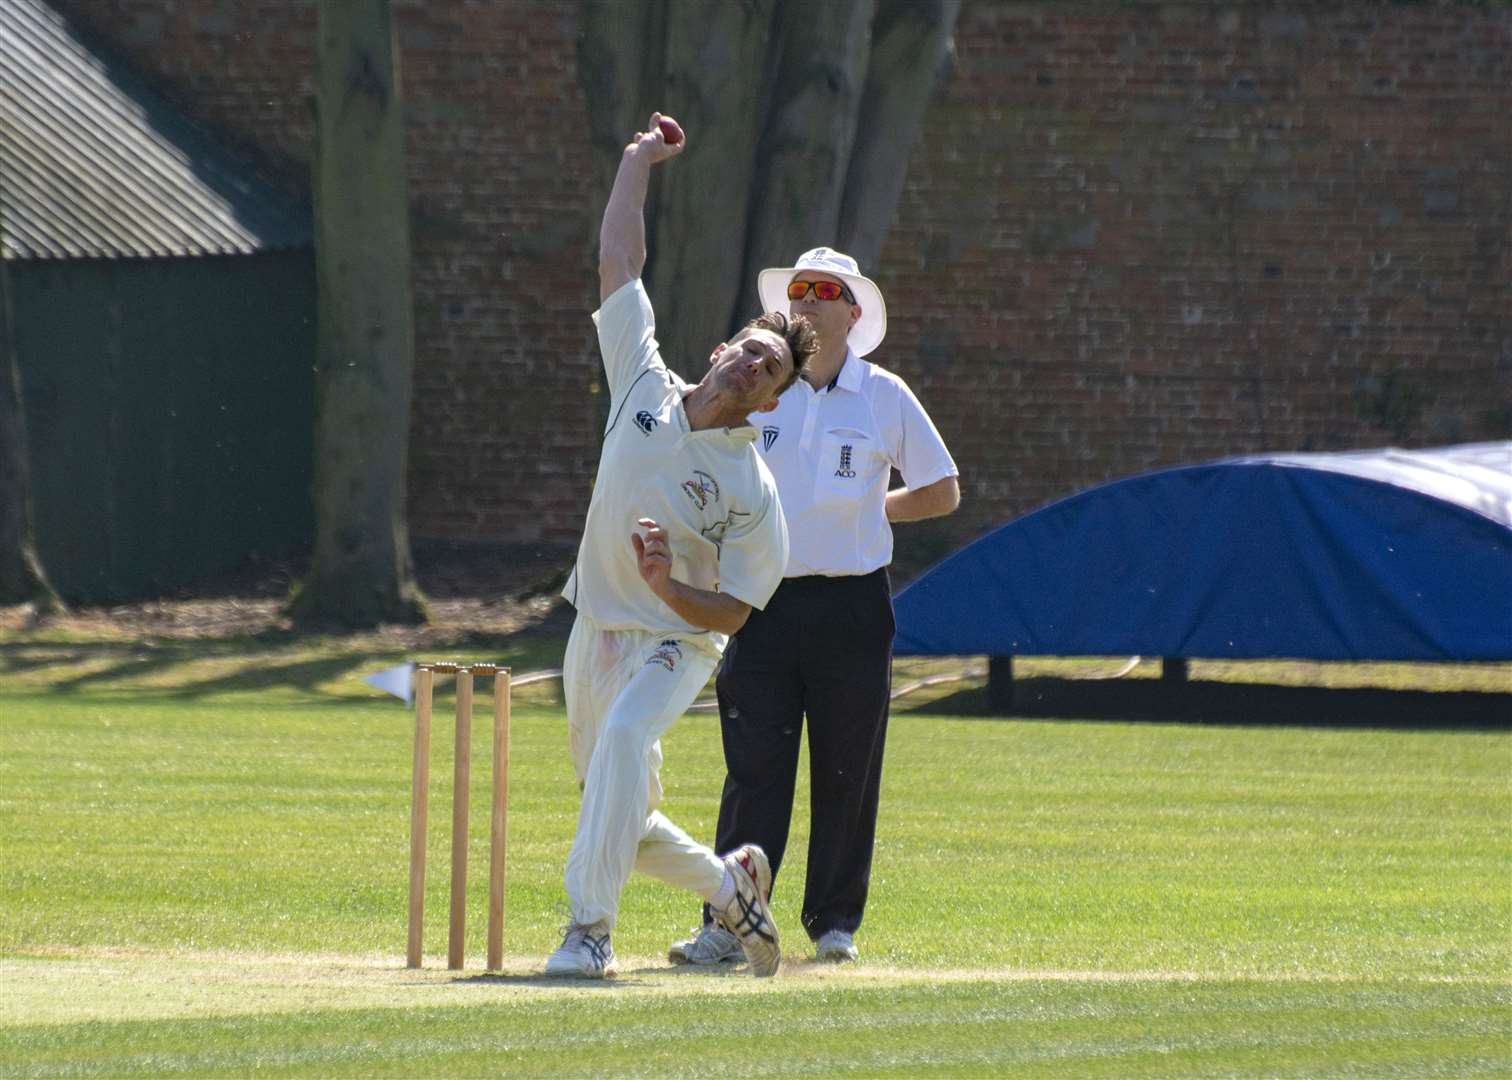 Bourne suffered a narrow two-run defeat against Sleaford on Saturday. Photo: Lee Hellwing (8957148)